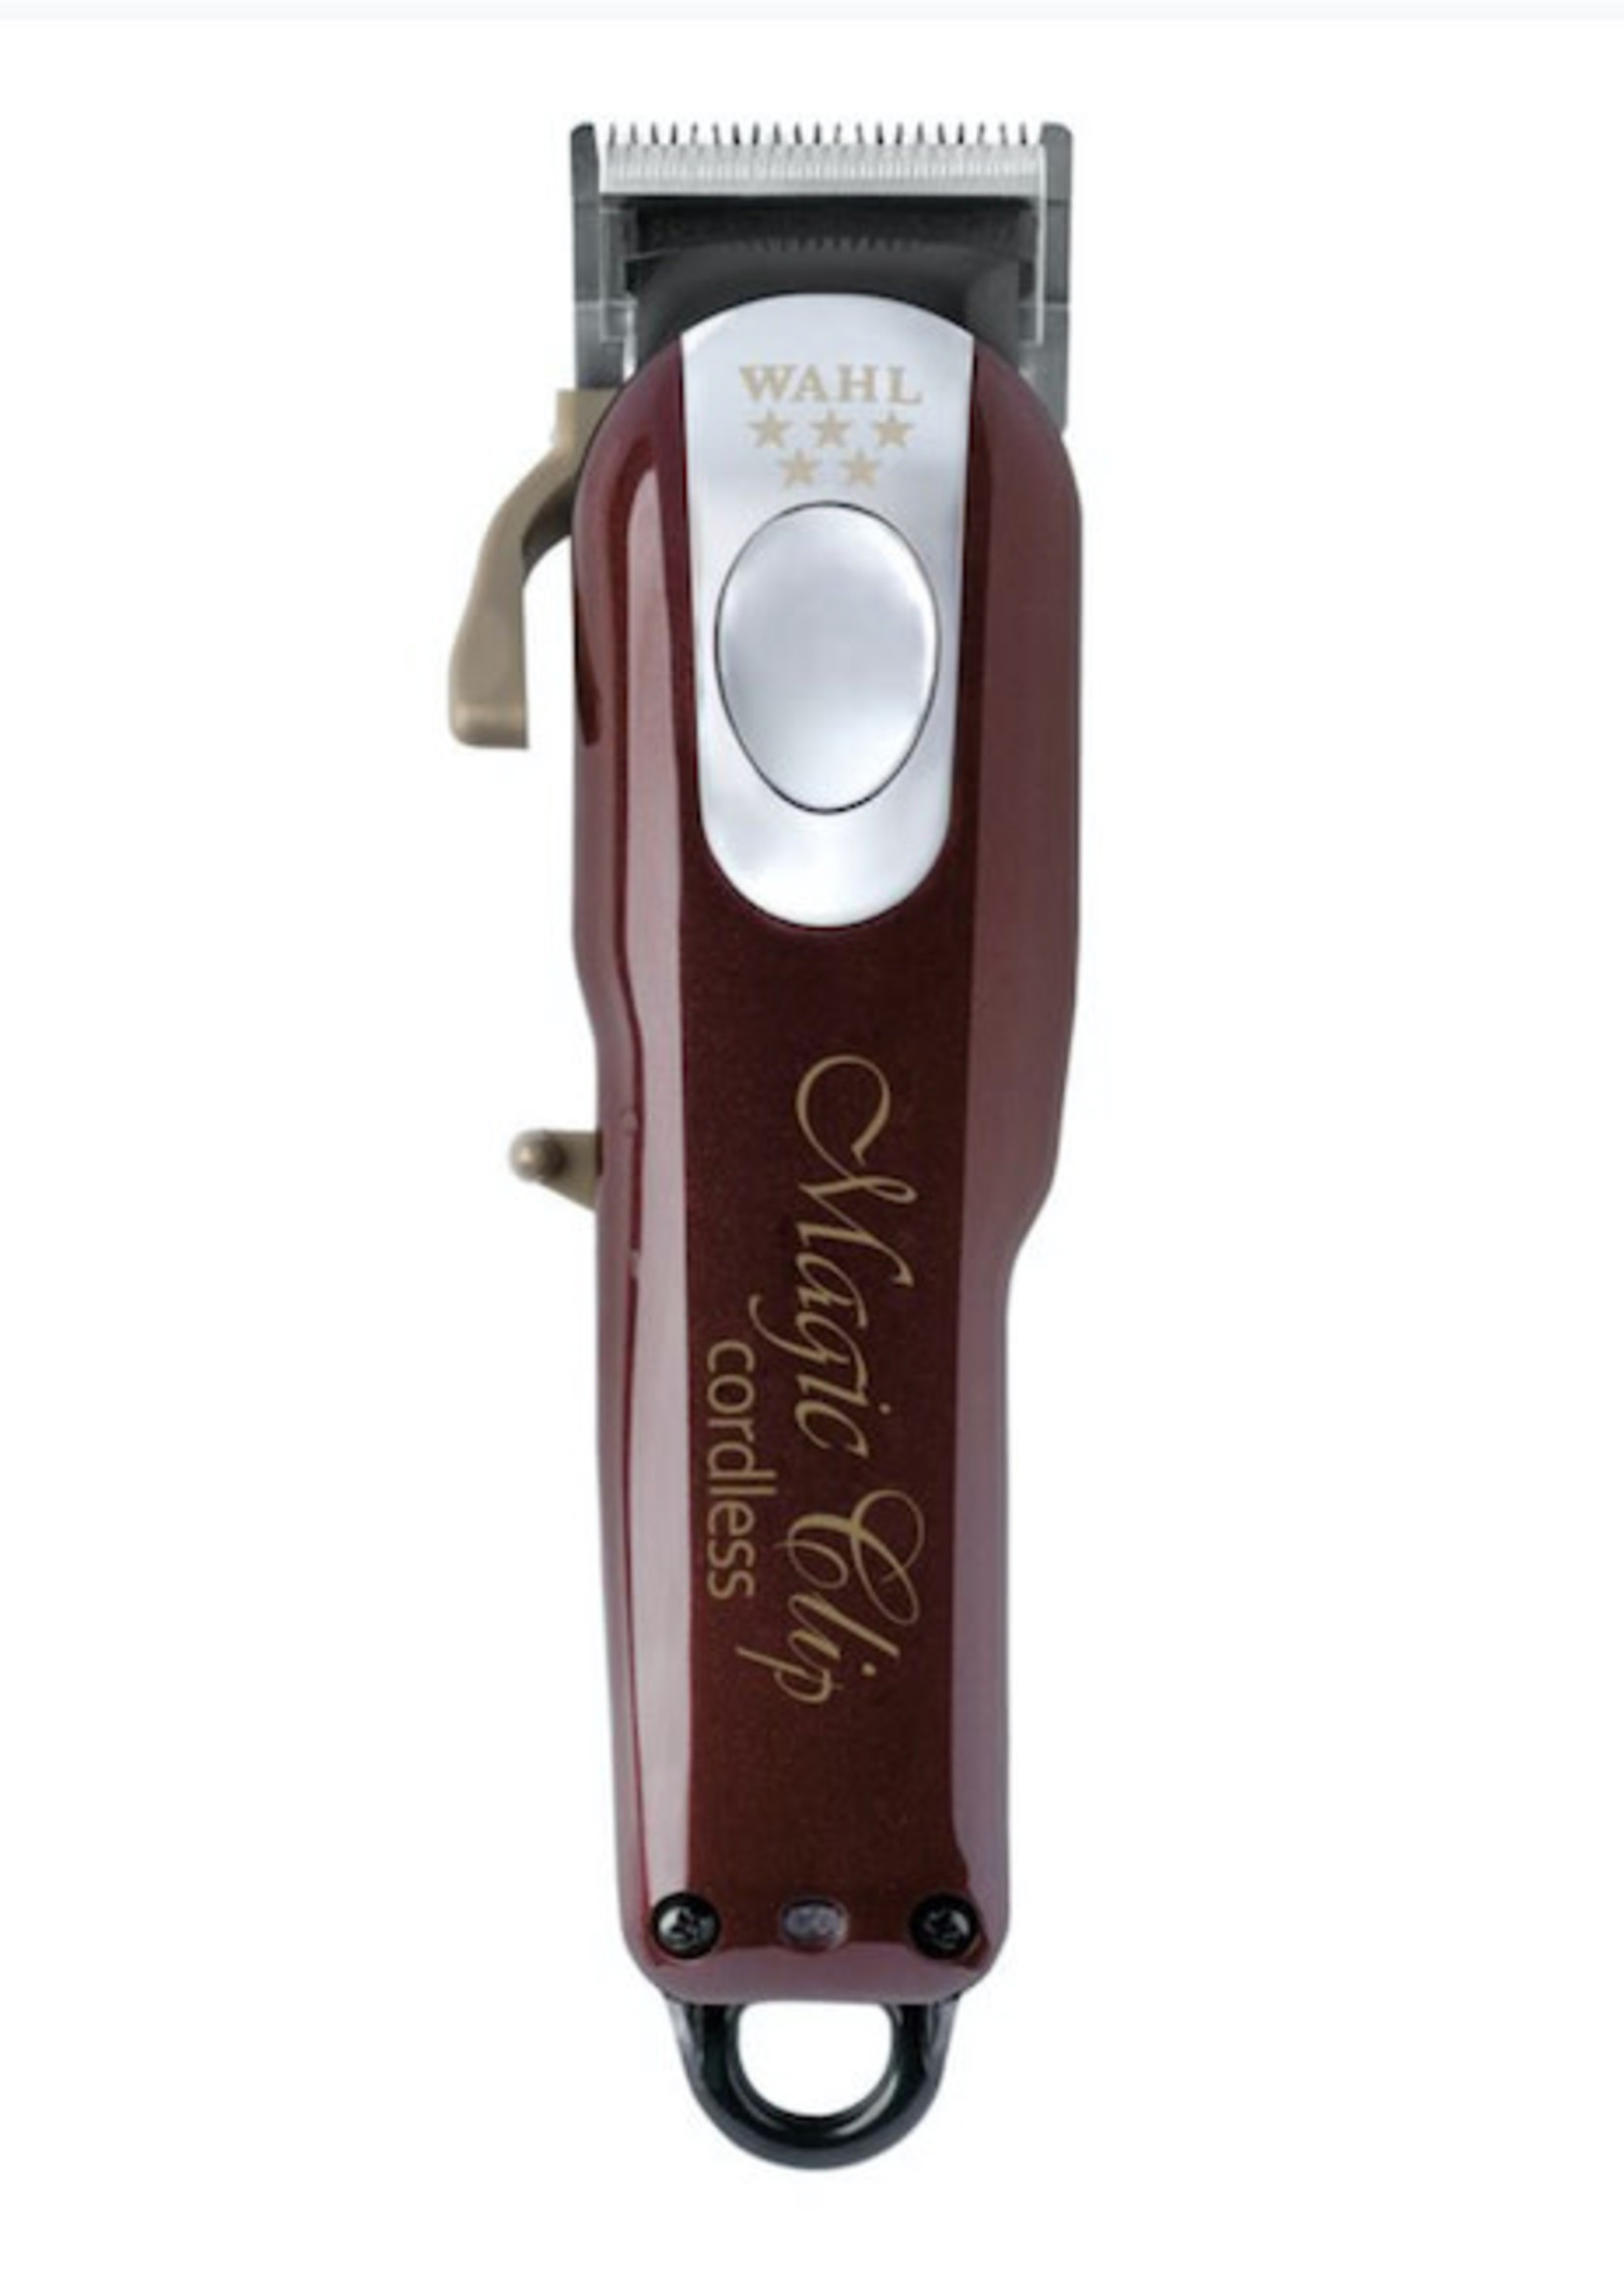 Wahl Wahl Professsional Magic Clip Cordless- Burgundy